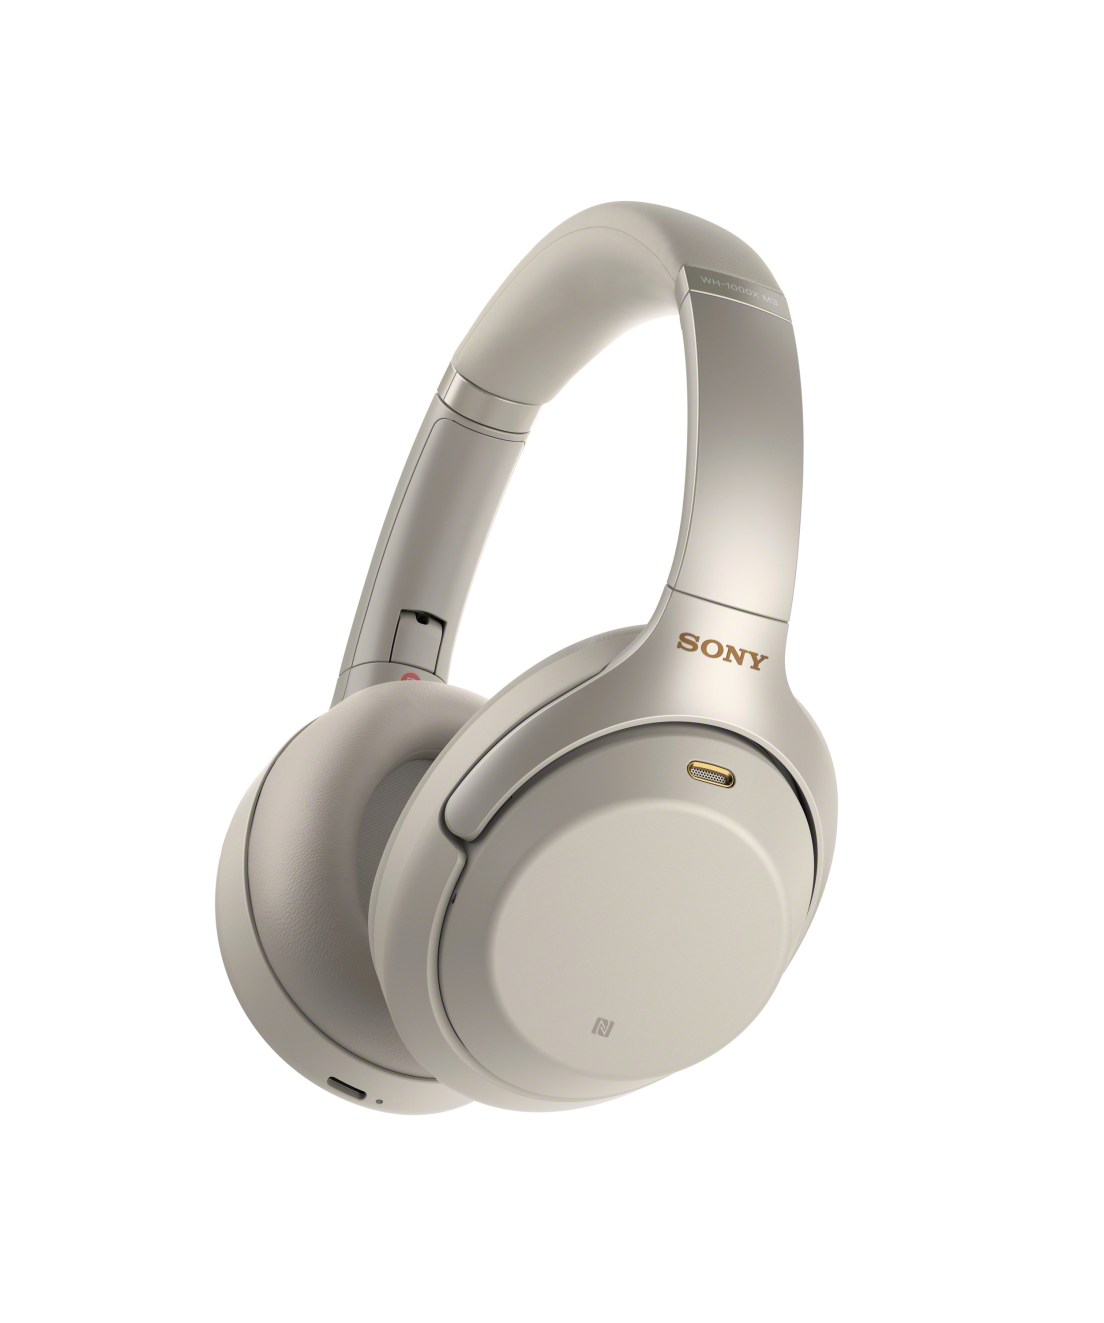 Sony WH-1000XM3 - Noise Canceling Headphones Done RIGHT! 3